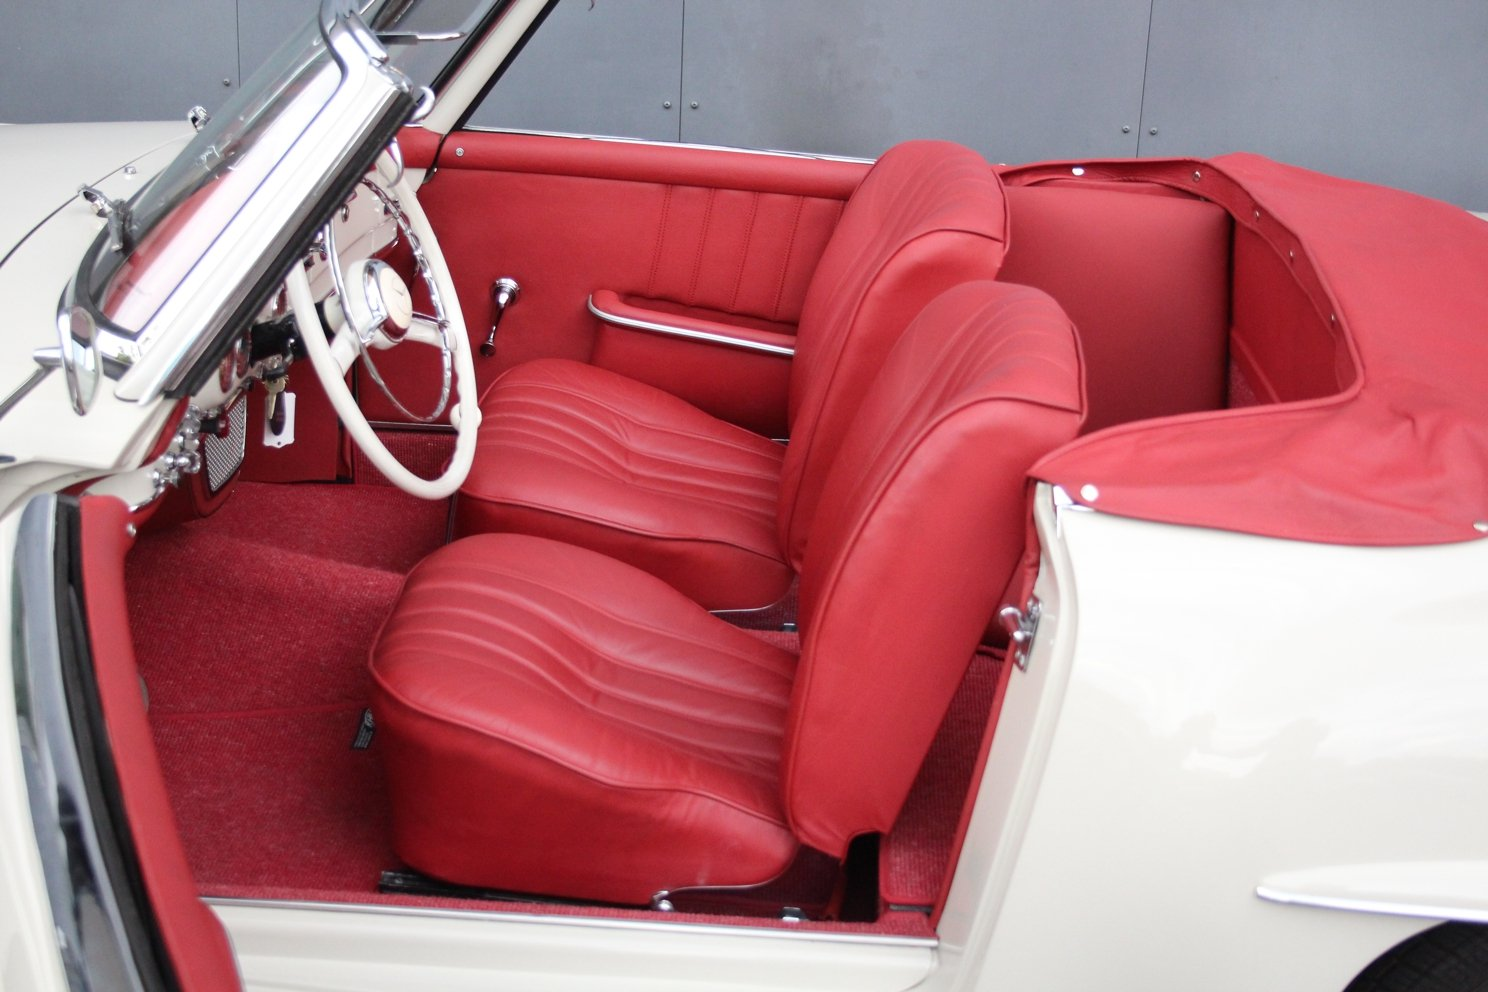 1956 Mercedes-Benz 190 SL Roadster LHD For Sale (picture 6 of 6)